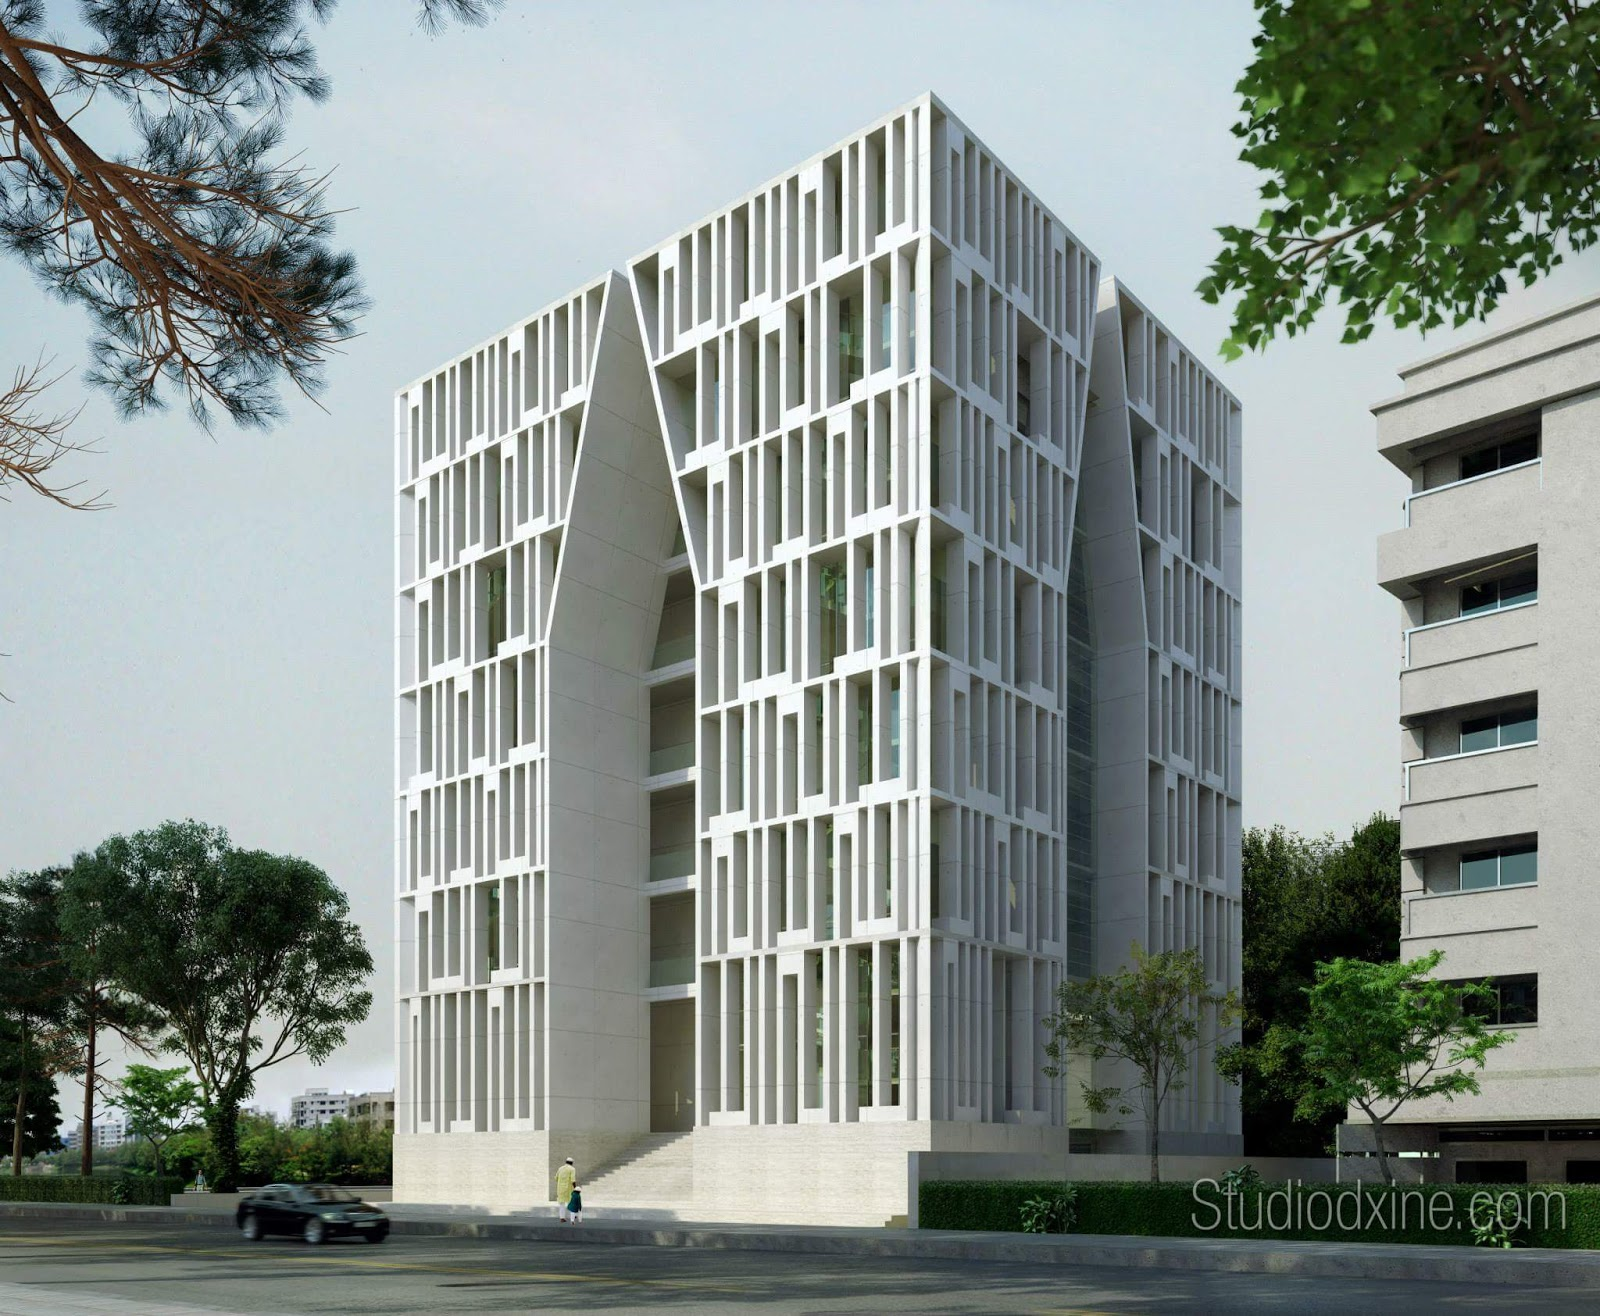 Gulshan society jame masjid by kashef mahboob urbana for Studio v architecture